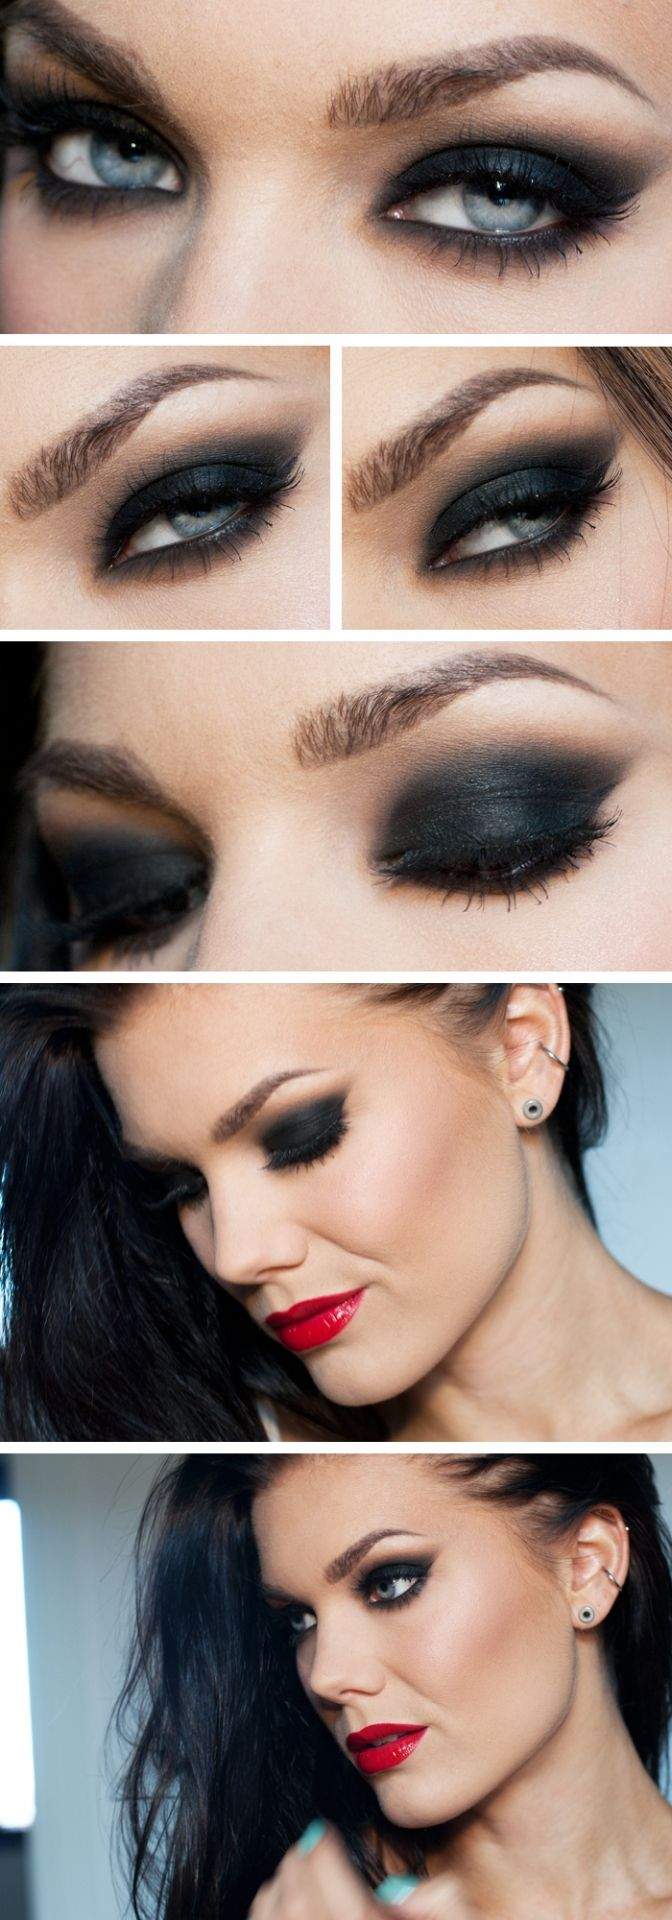 Today's look- the smokey eyes